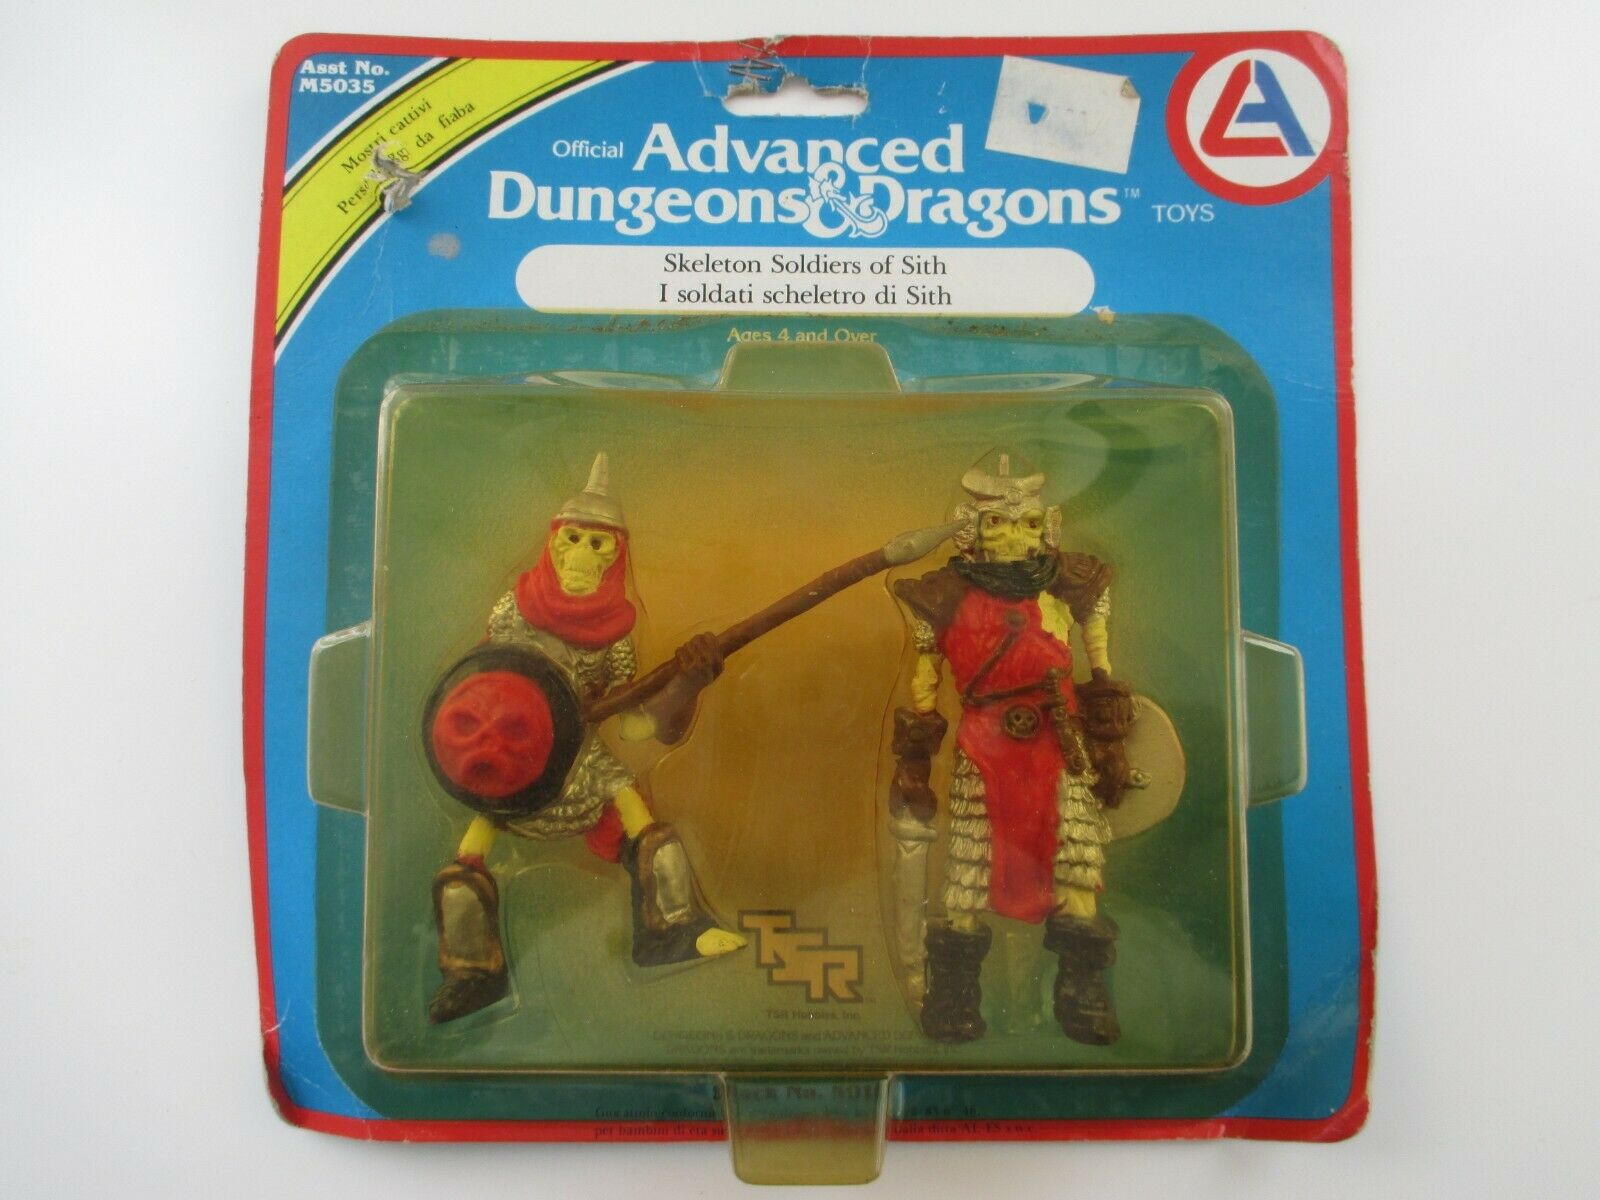 SKELETON SOLDIERS OF SITH ADVANCED DUNGEONS & DRAGONS HOBBIES 5016 NEUF 1983